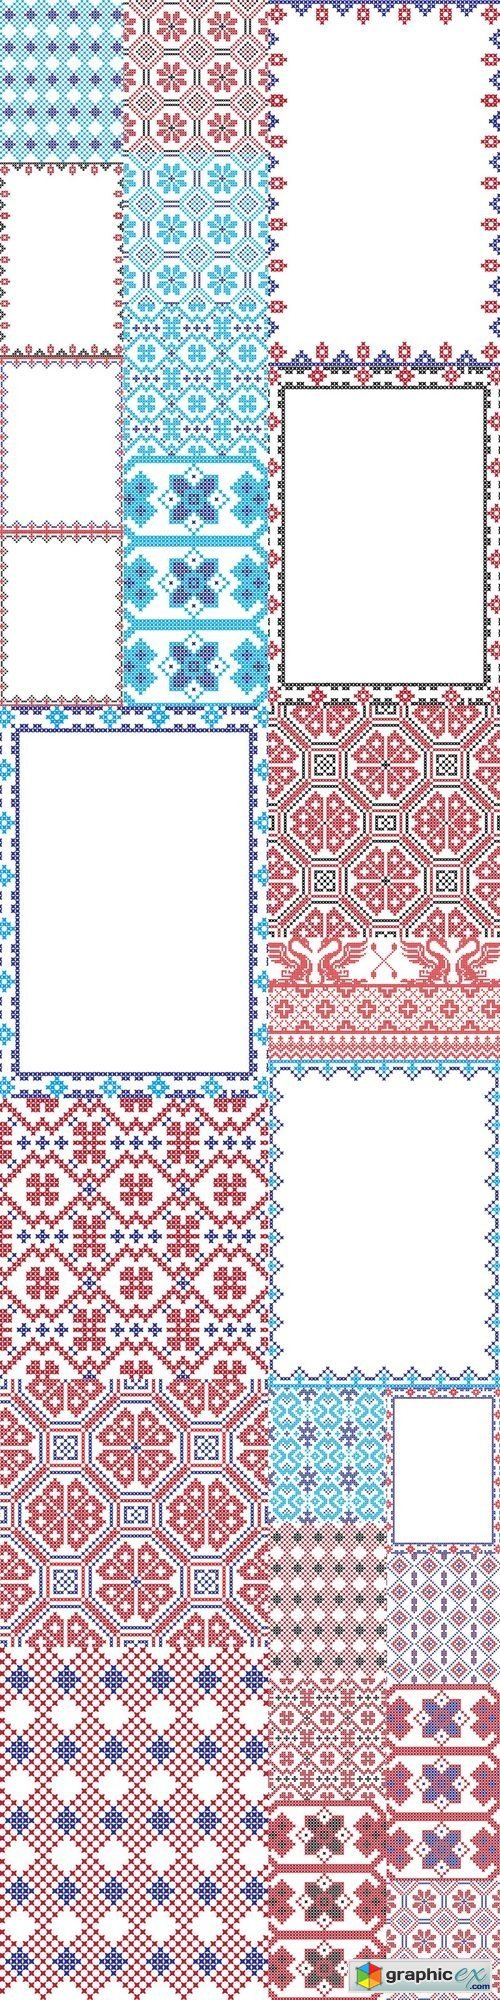 Embroidered pattern on transparent background 5